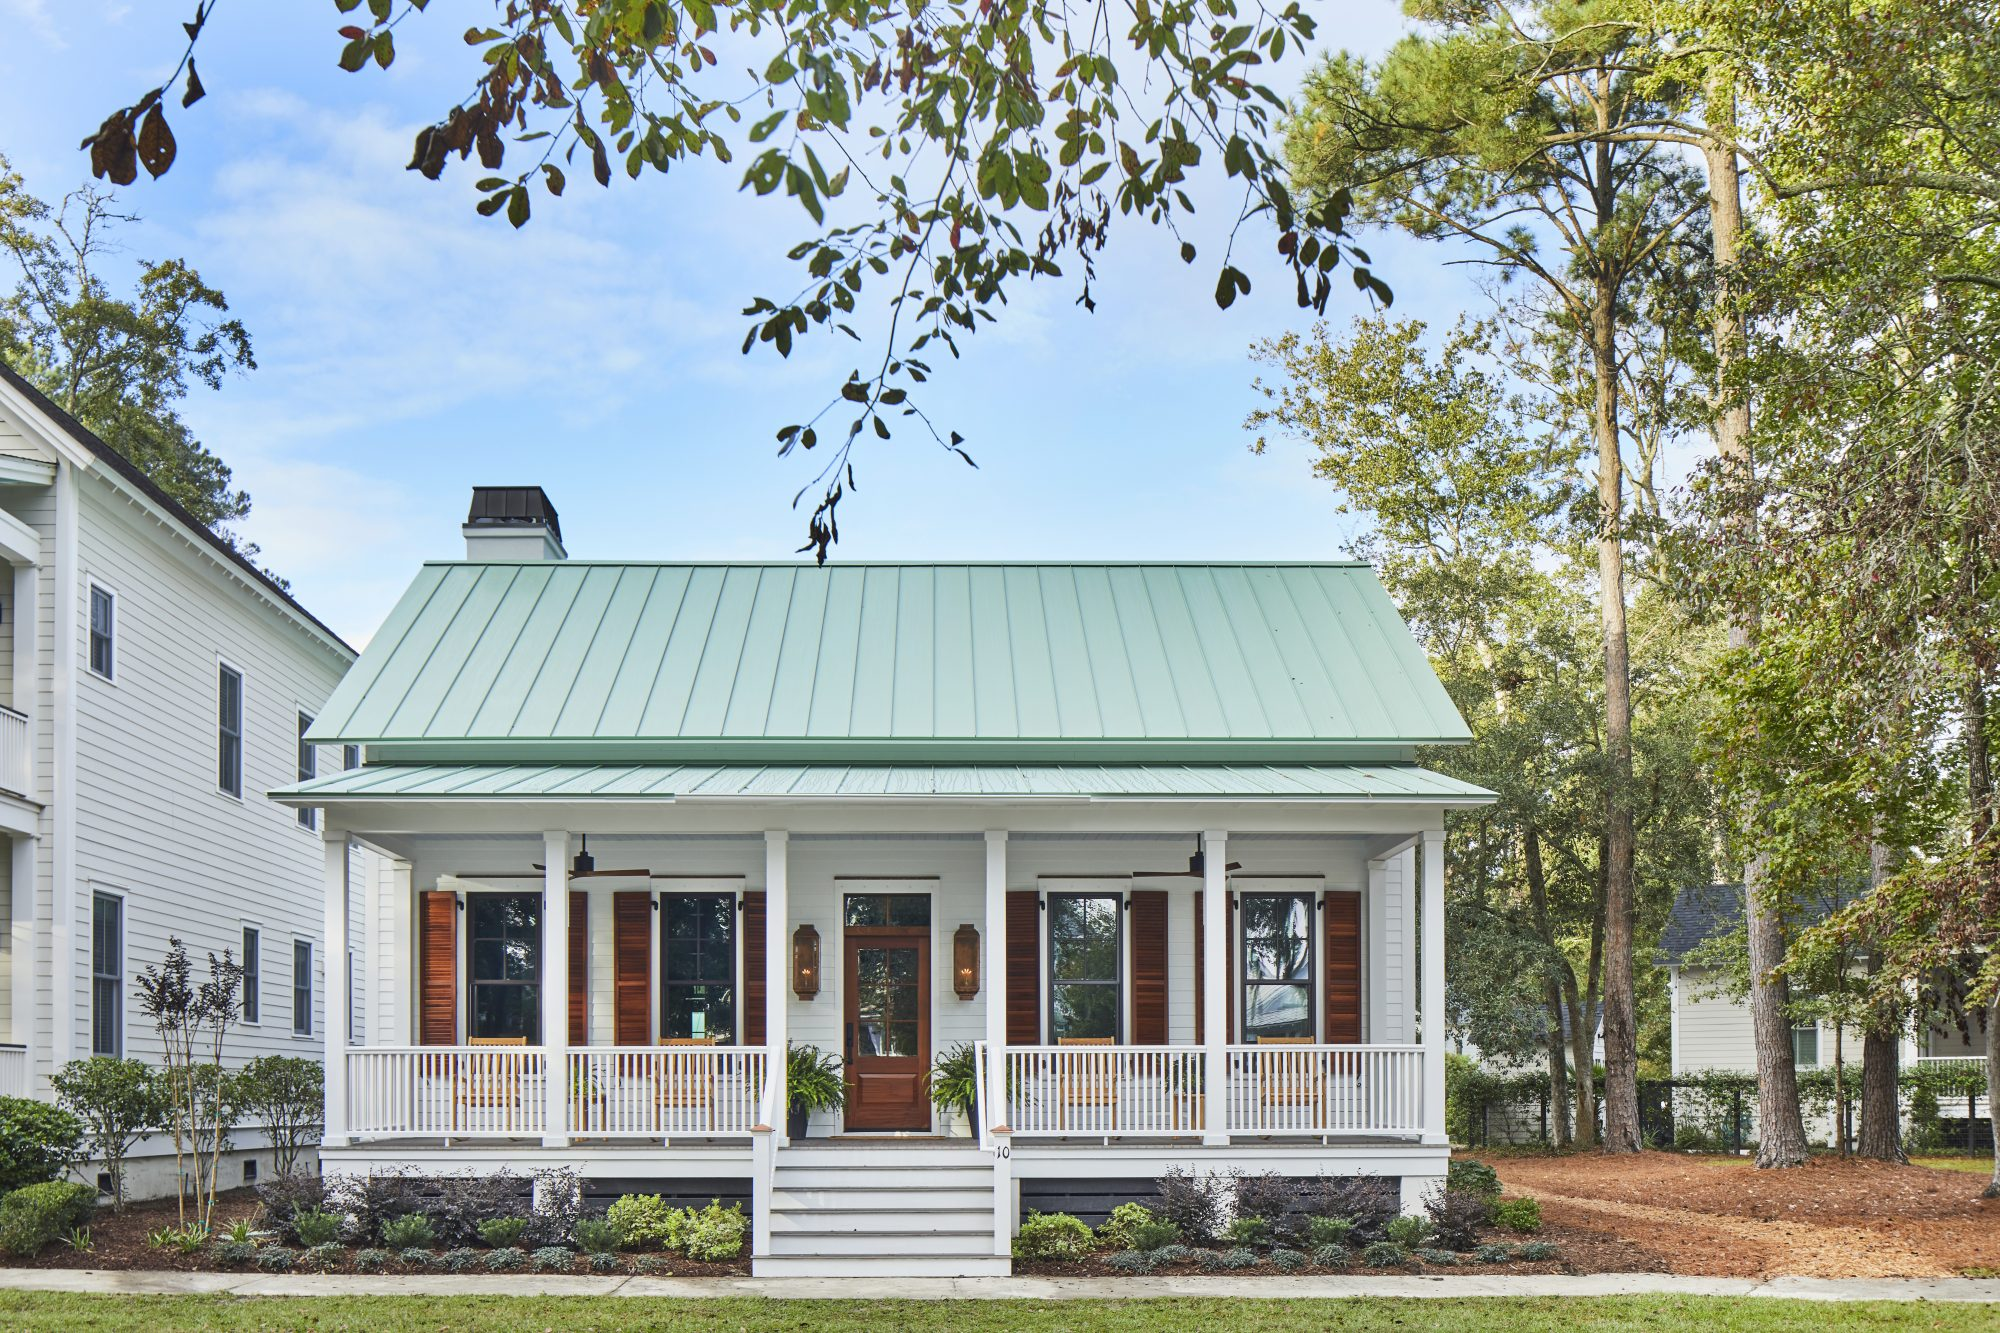 Quaint Southern Lowcountry home built by Allen Patterson Builders with Southern Living house plan, The Loudon, in Habersham Beaufort, South Carolina